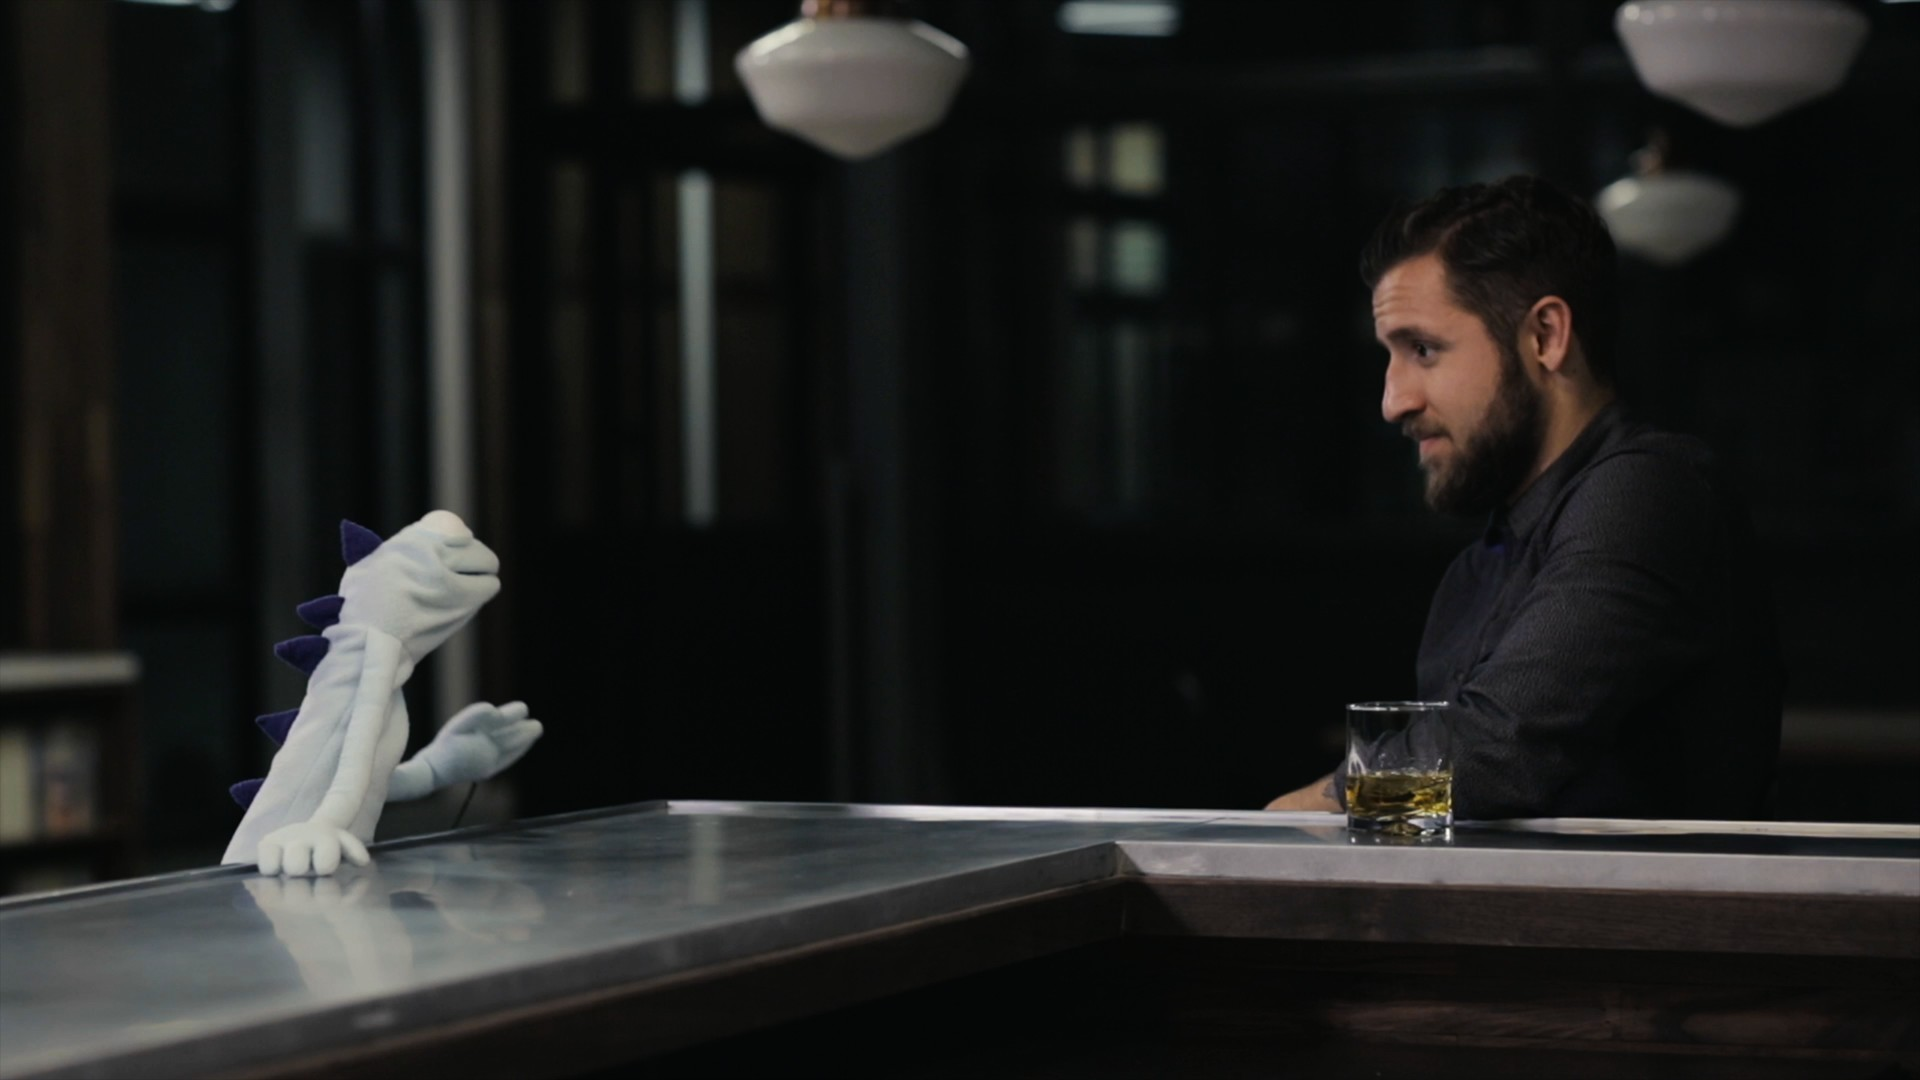 Hacker 'Phineas Fisher' Speaks on Camera for the First Time—Through a Puppet